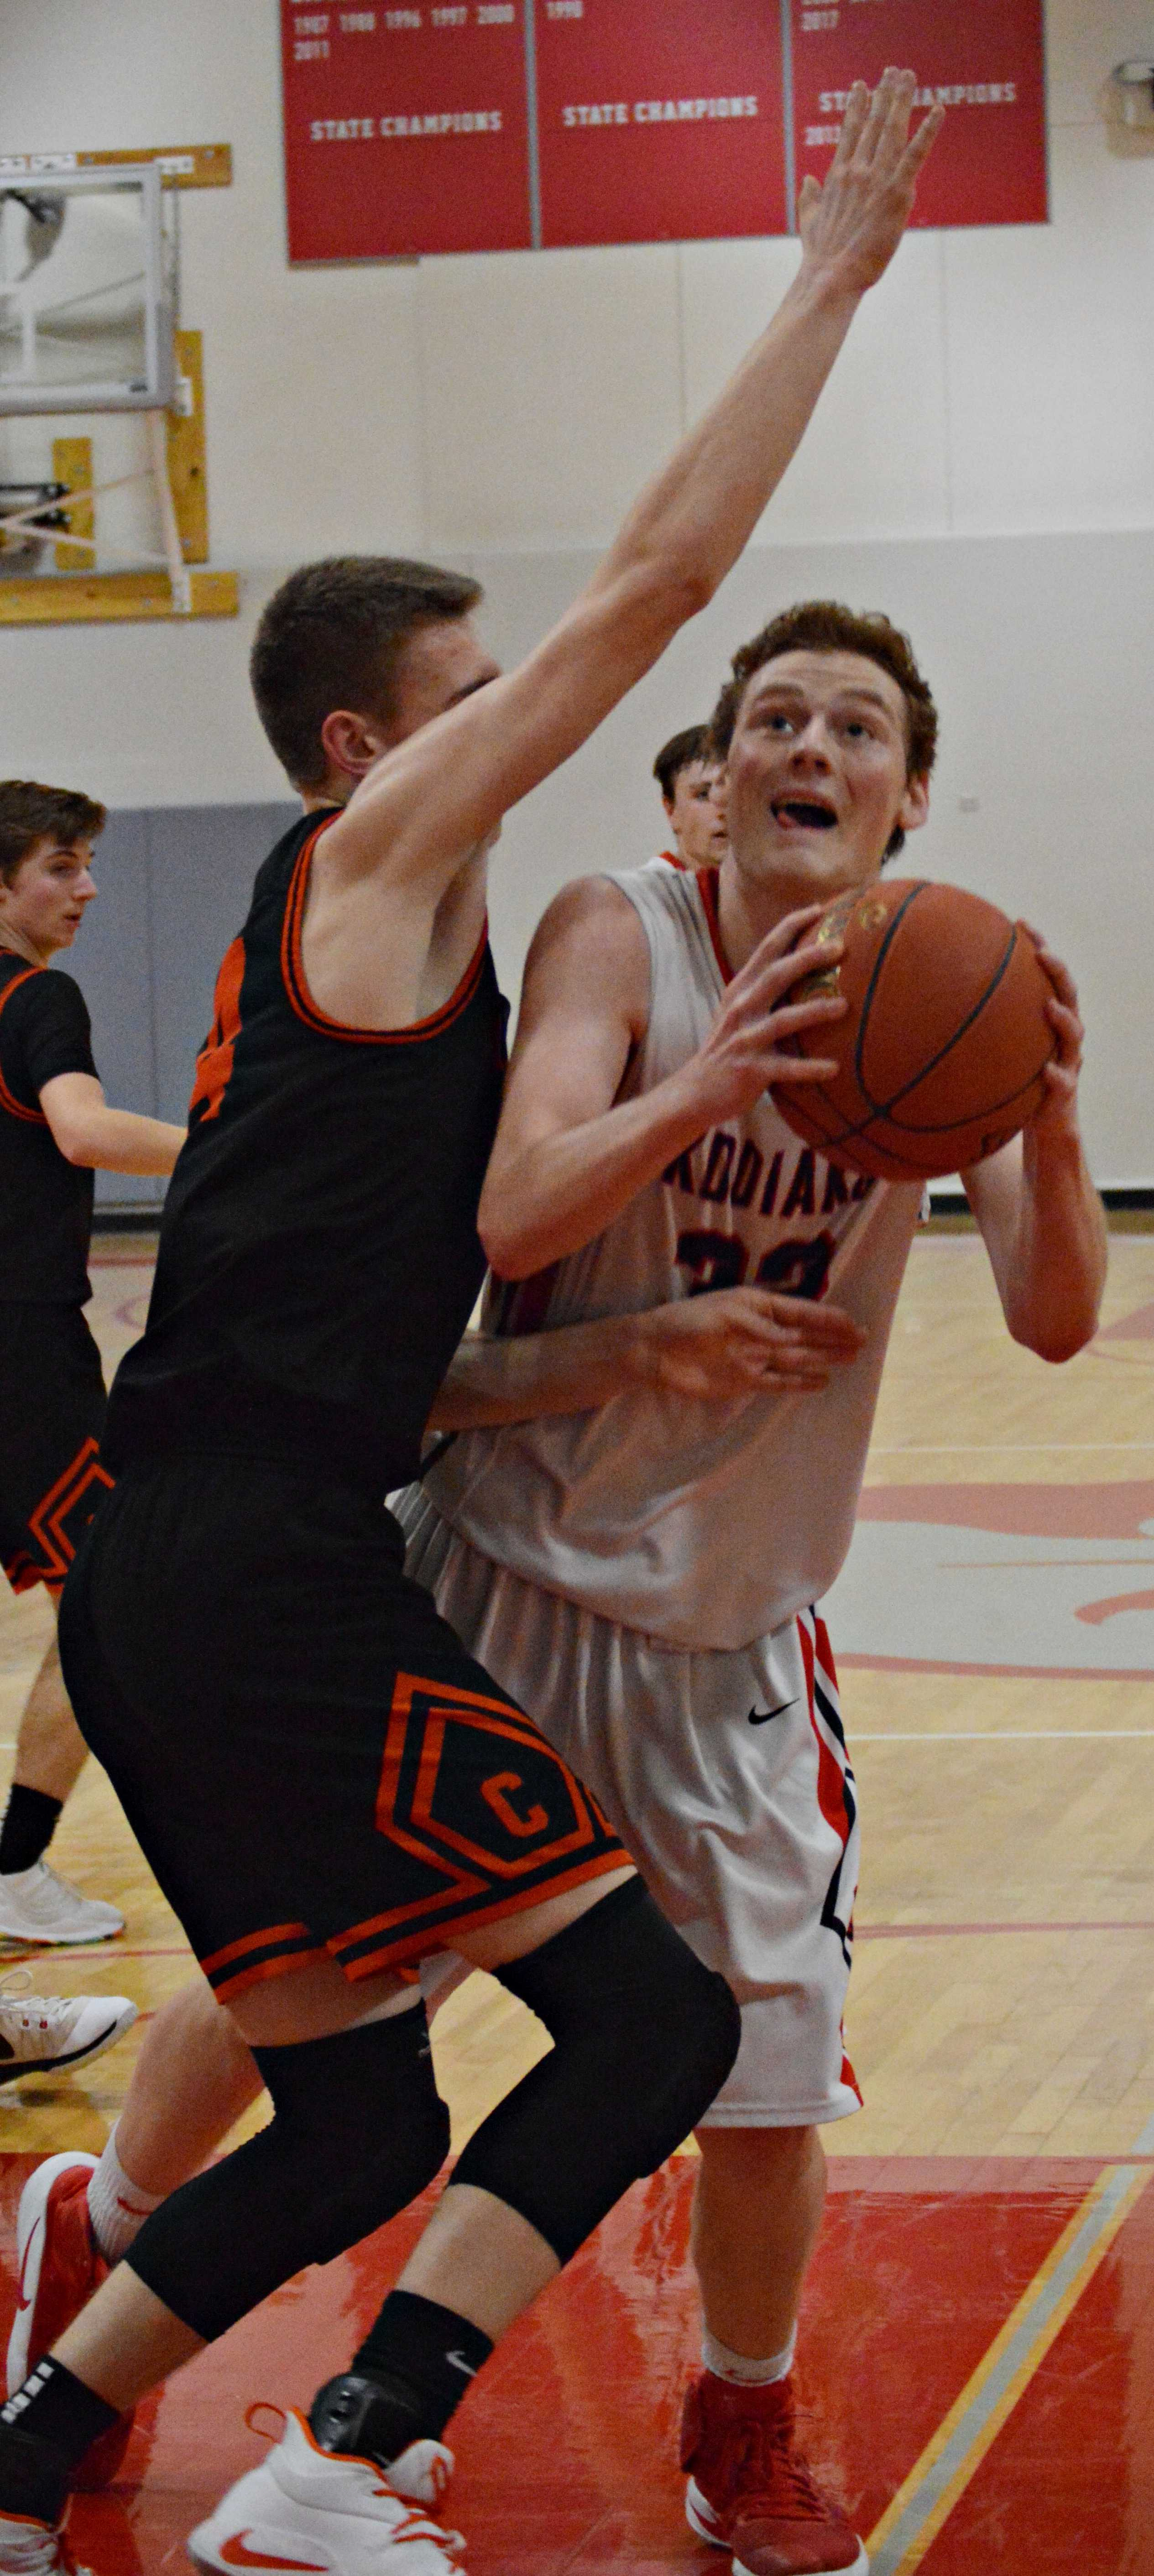 Hans Schlyer (right) led the Kodiaks with 24 points.